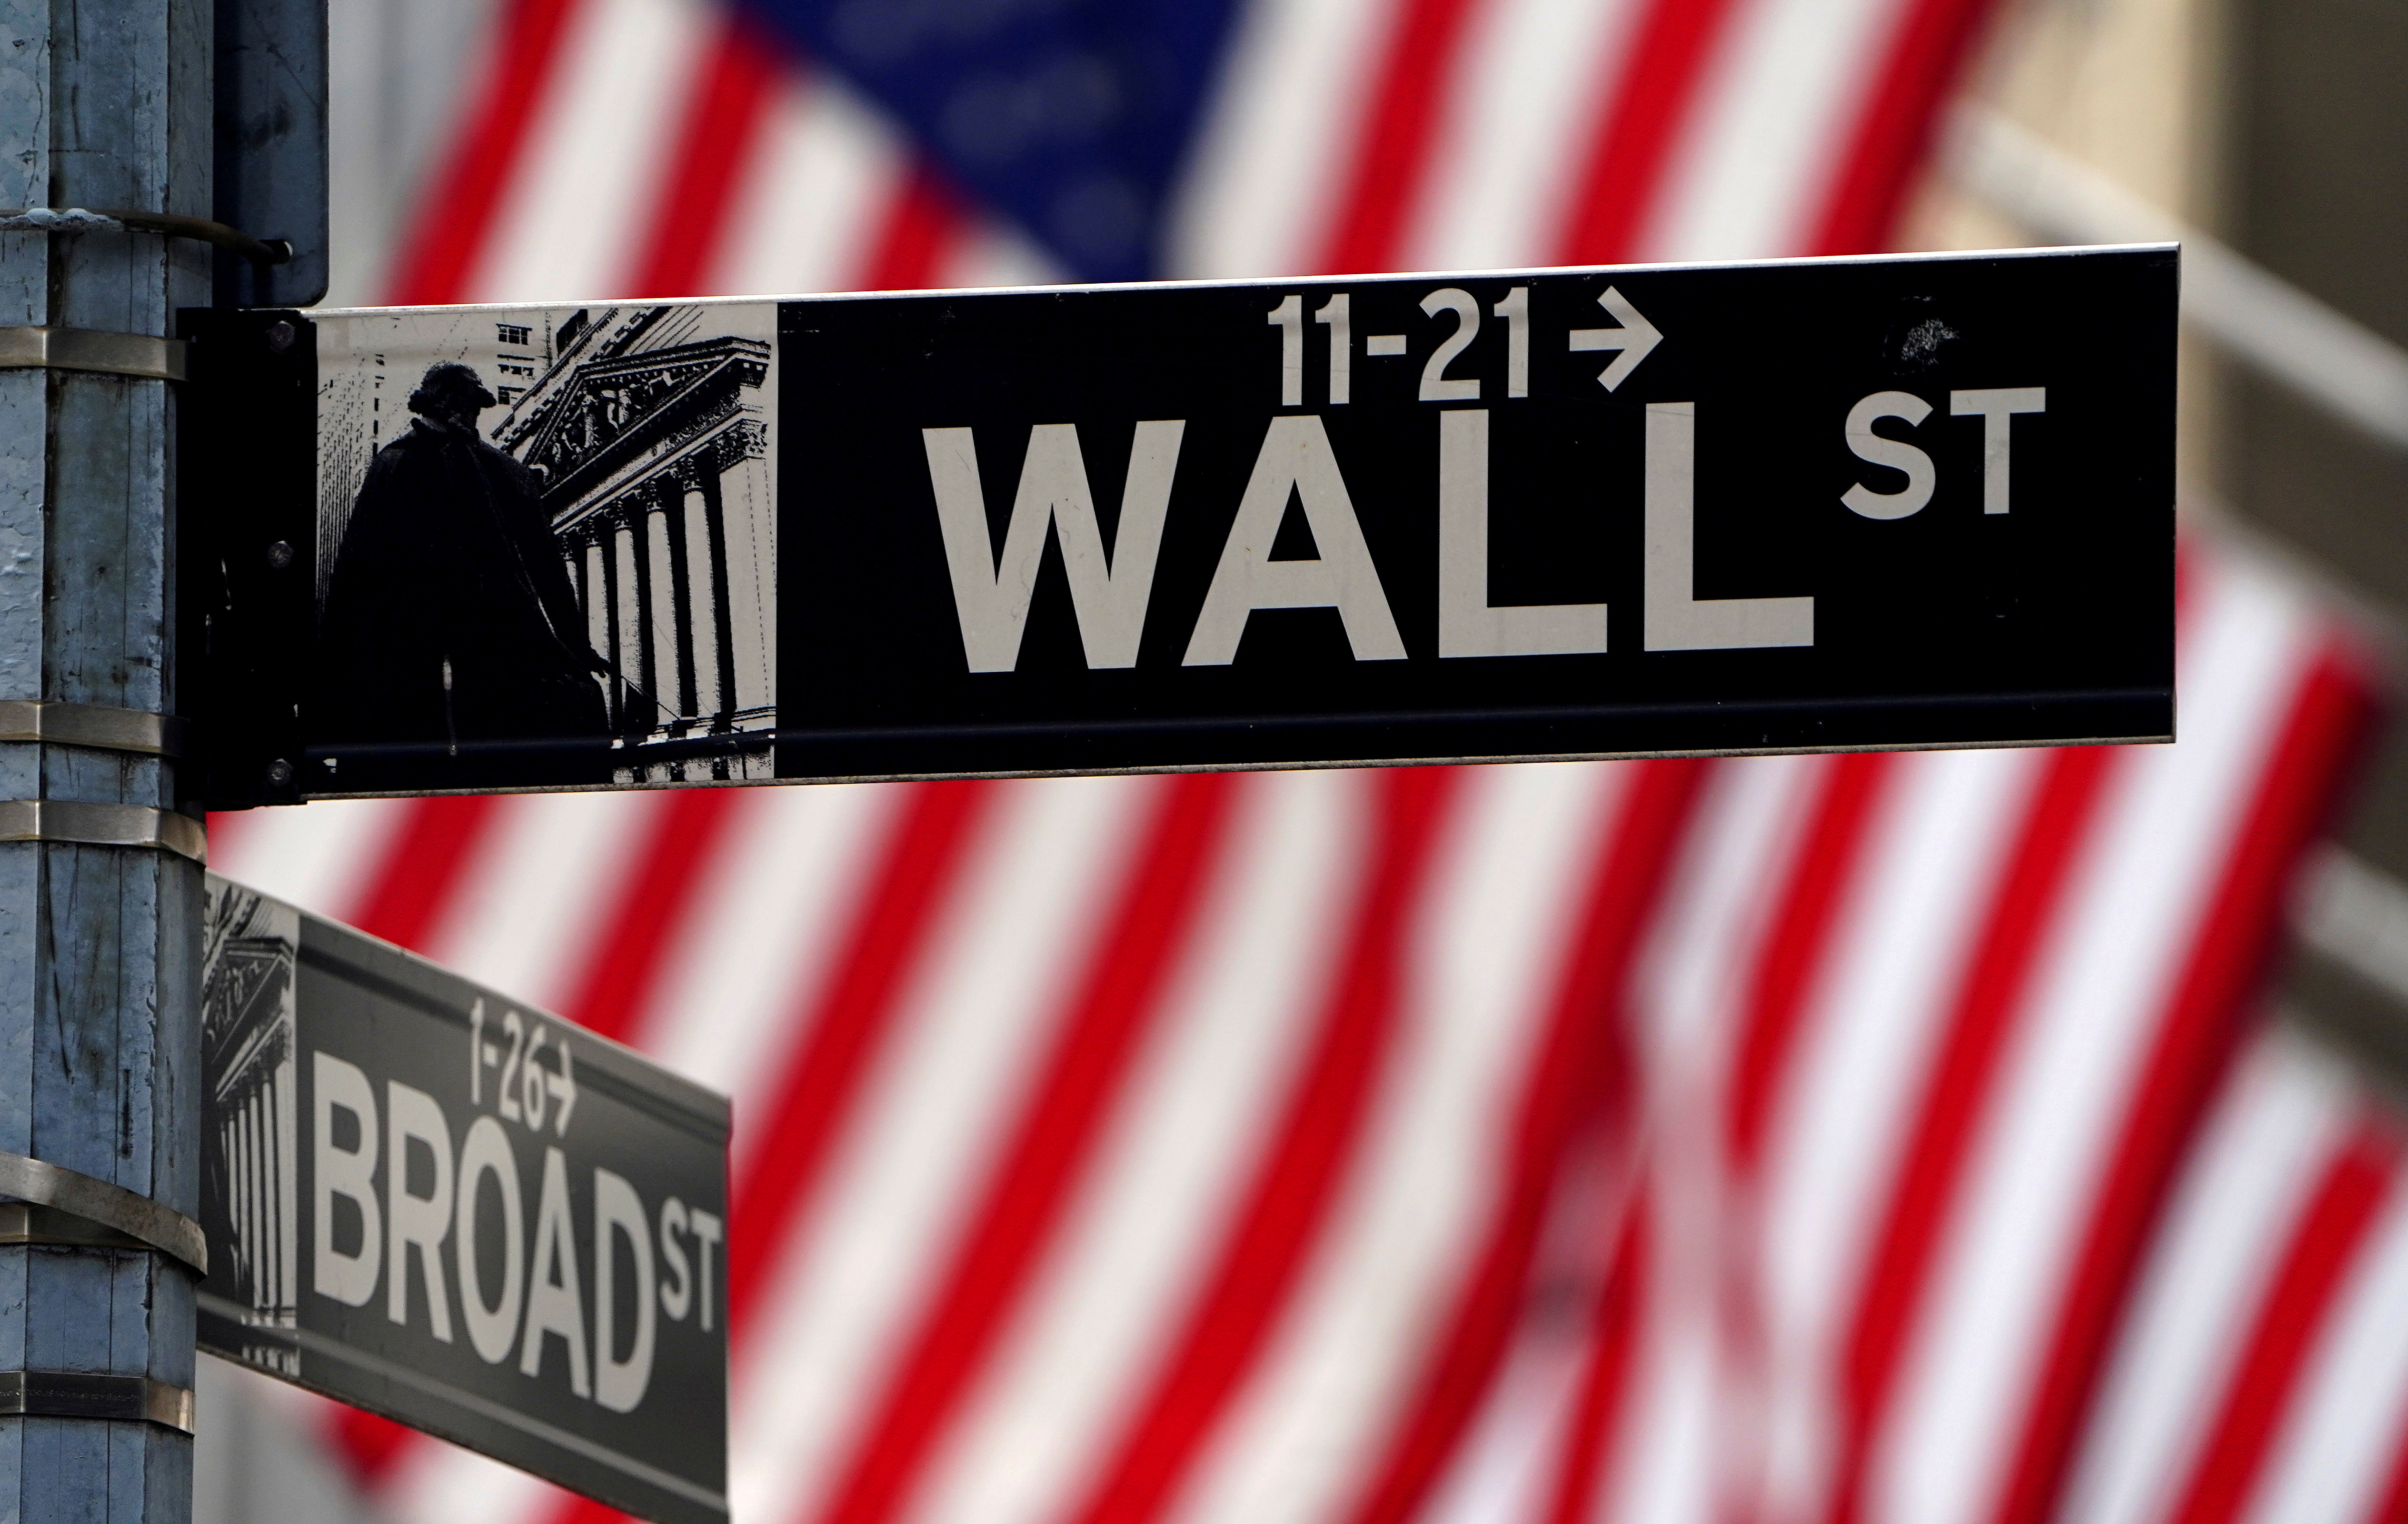 A Wall Street sign outside the New York Stock Exchange in the Manhattan borough of New York City, New York, U.S., April 16, 2021. REUTERS/Carlo Allegri